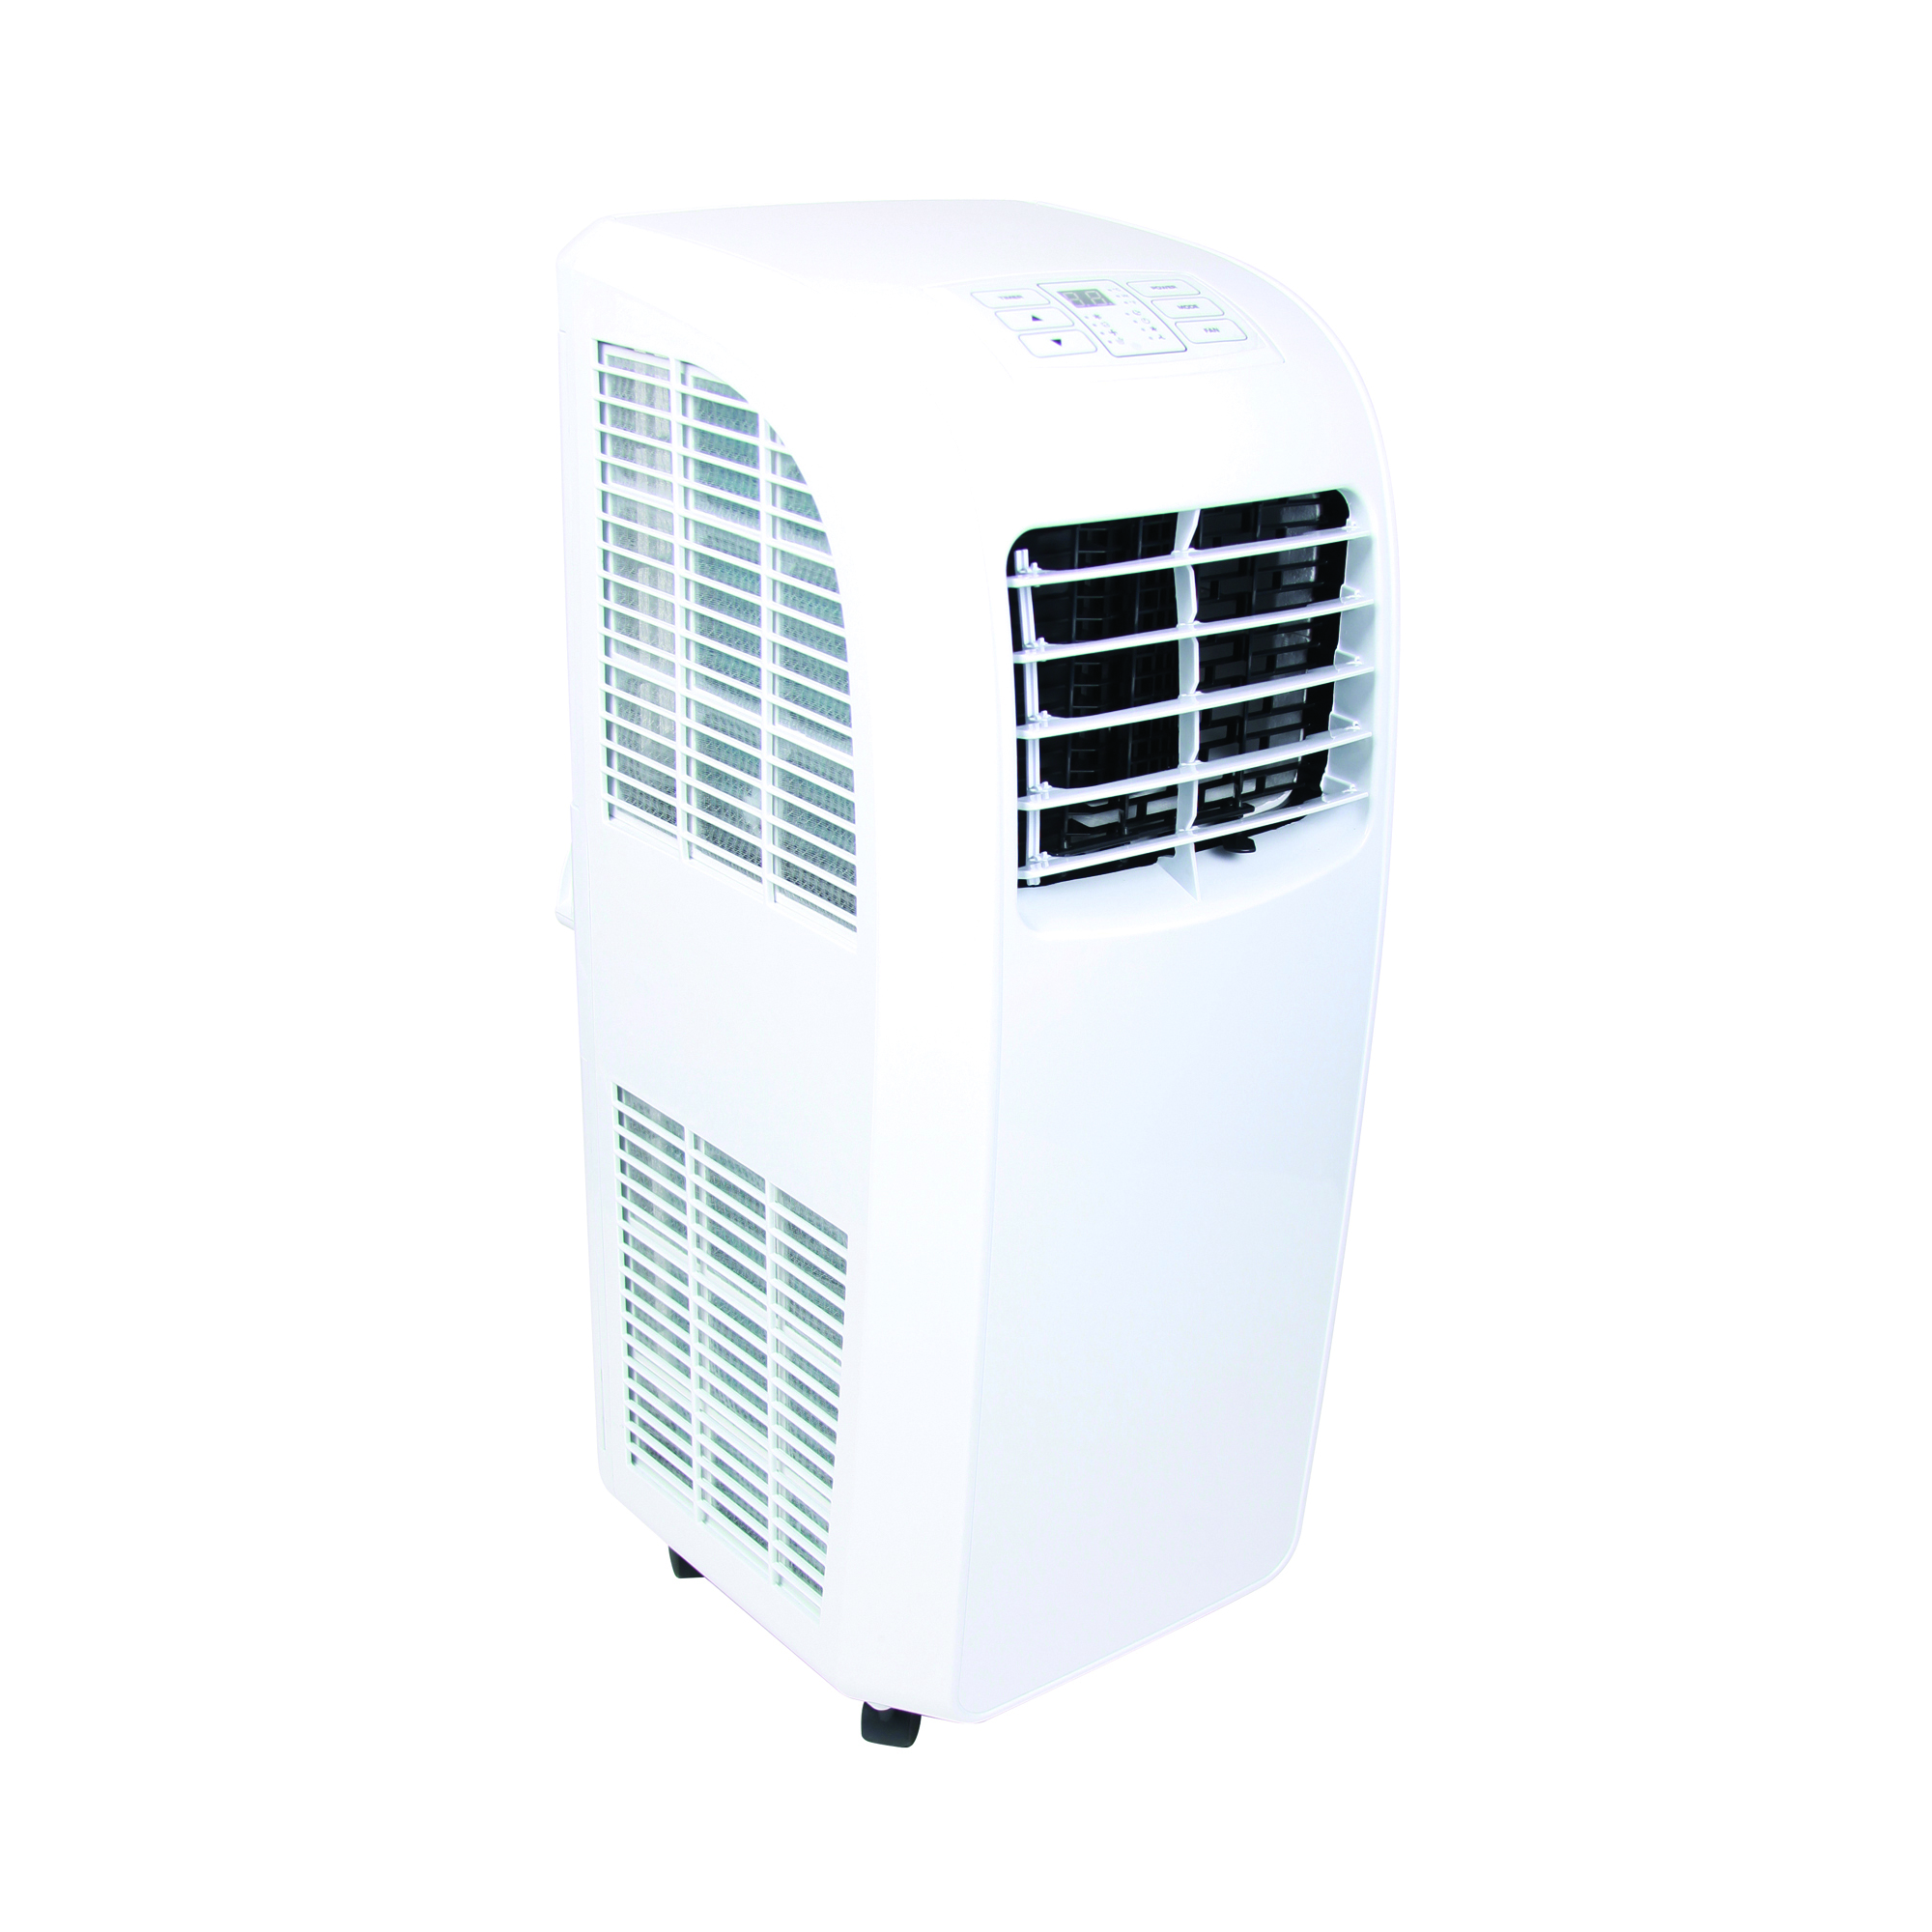 White Rhino 9000 BTU air conditioner with digital control panel on the top, vents on the front and side and castor wheels